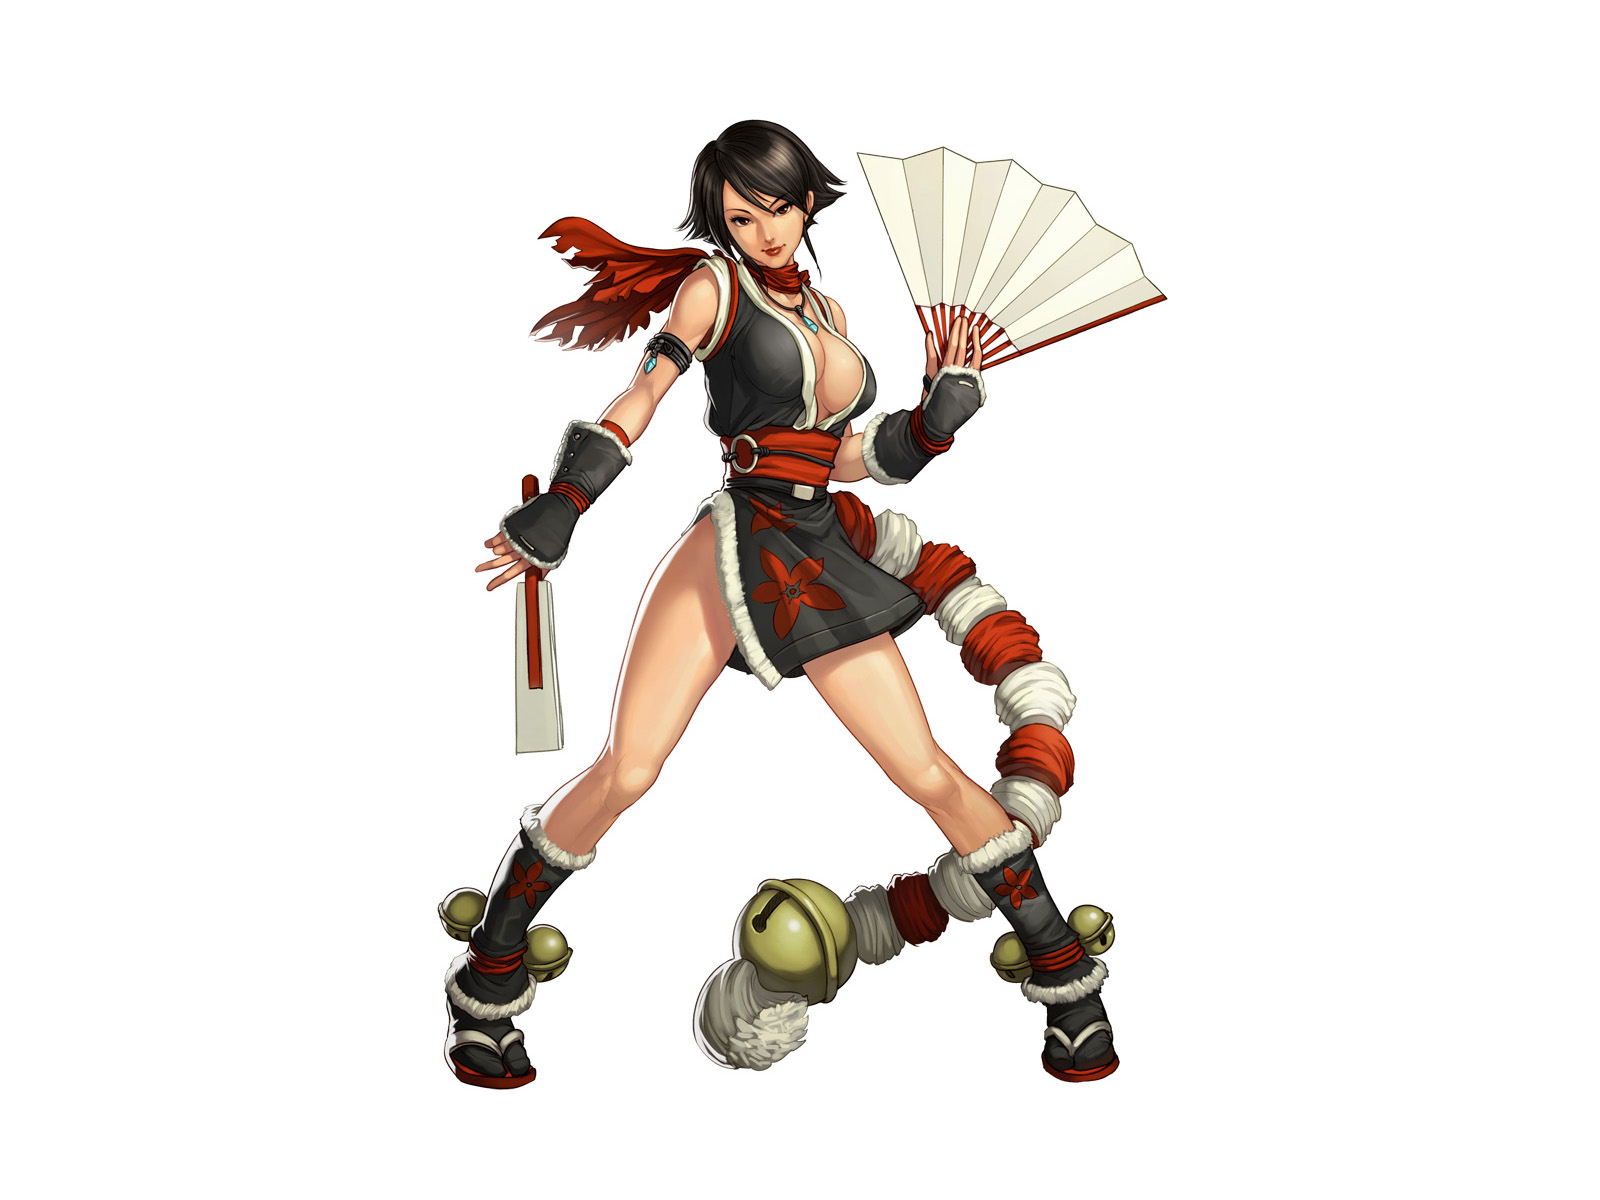 Mai Shiranui Wallpaper